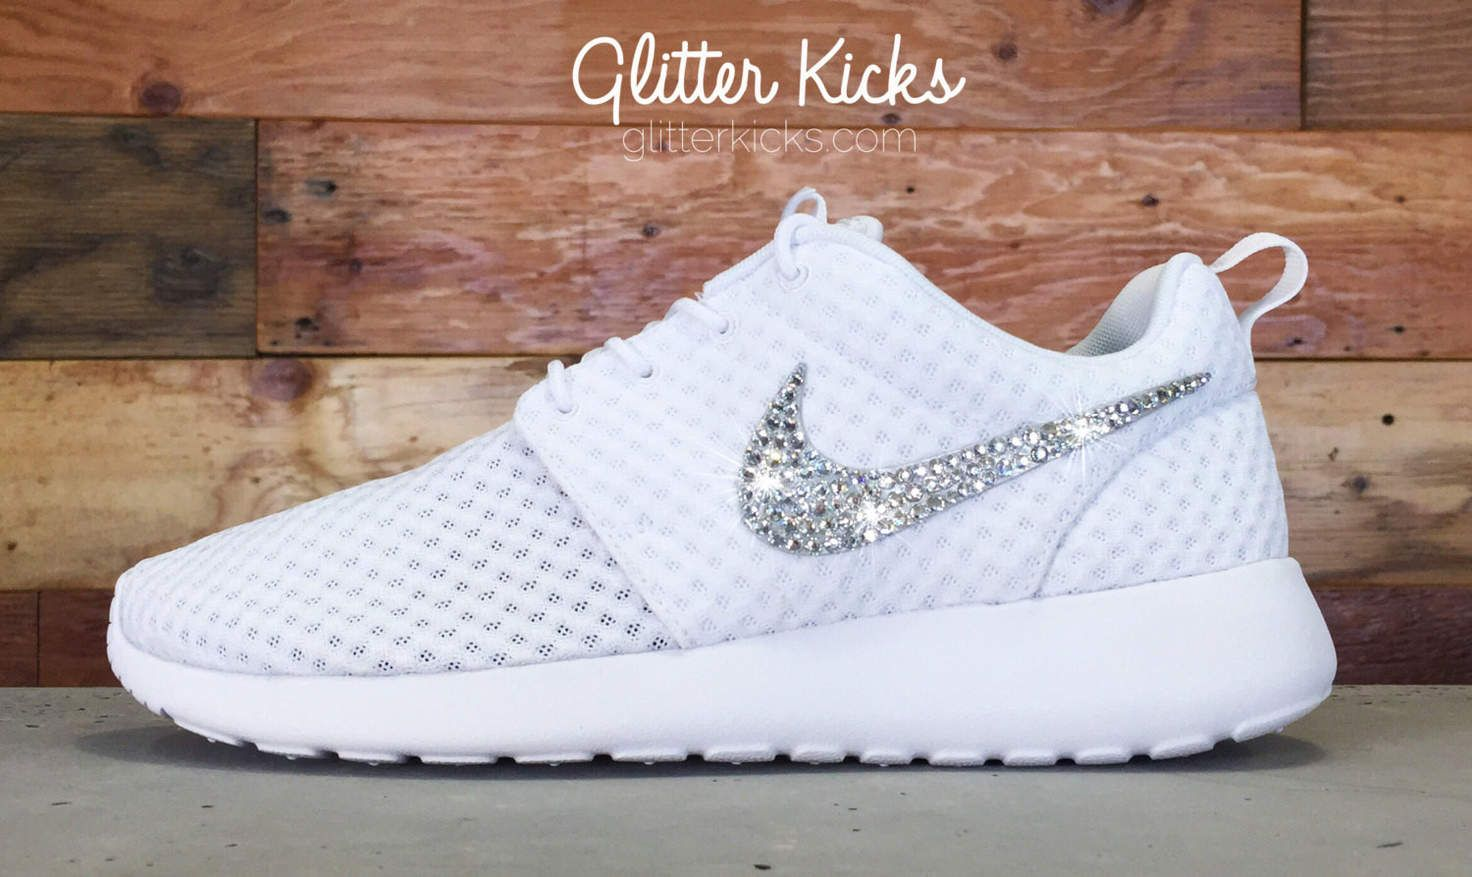 separation shoes df382 187c4 Women s Nike Roshe One Breeze Casual Shoes By Glitter Kicks - Customized  With Swarovski Elements Crystal Rhinestones - White White